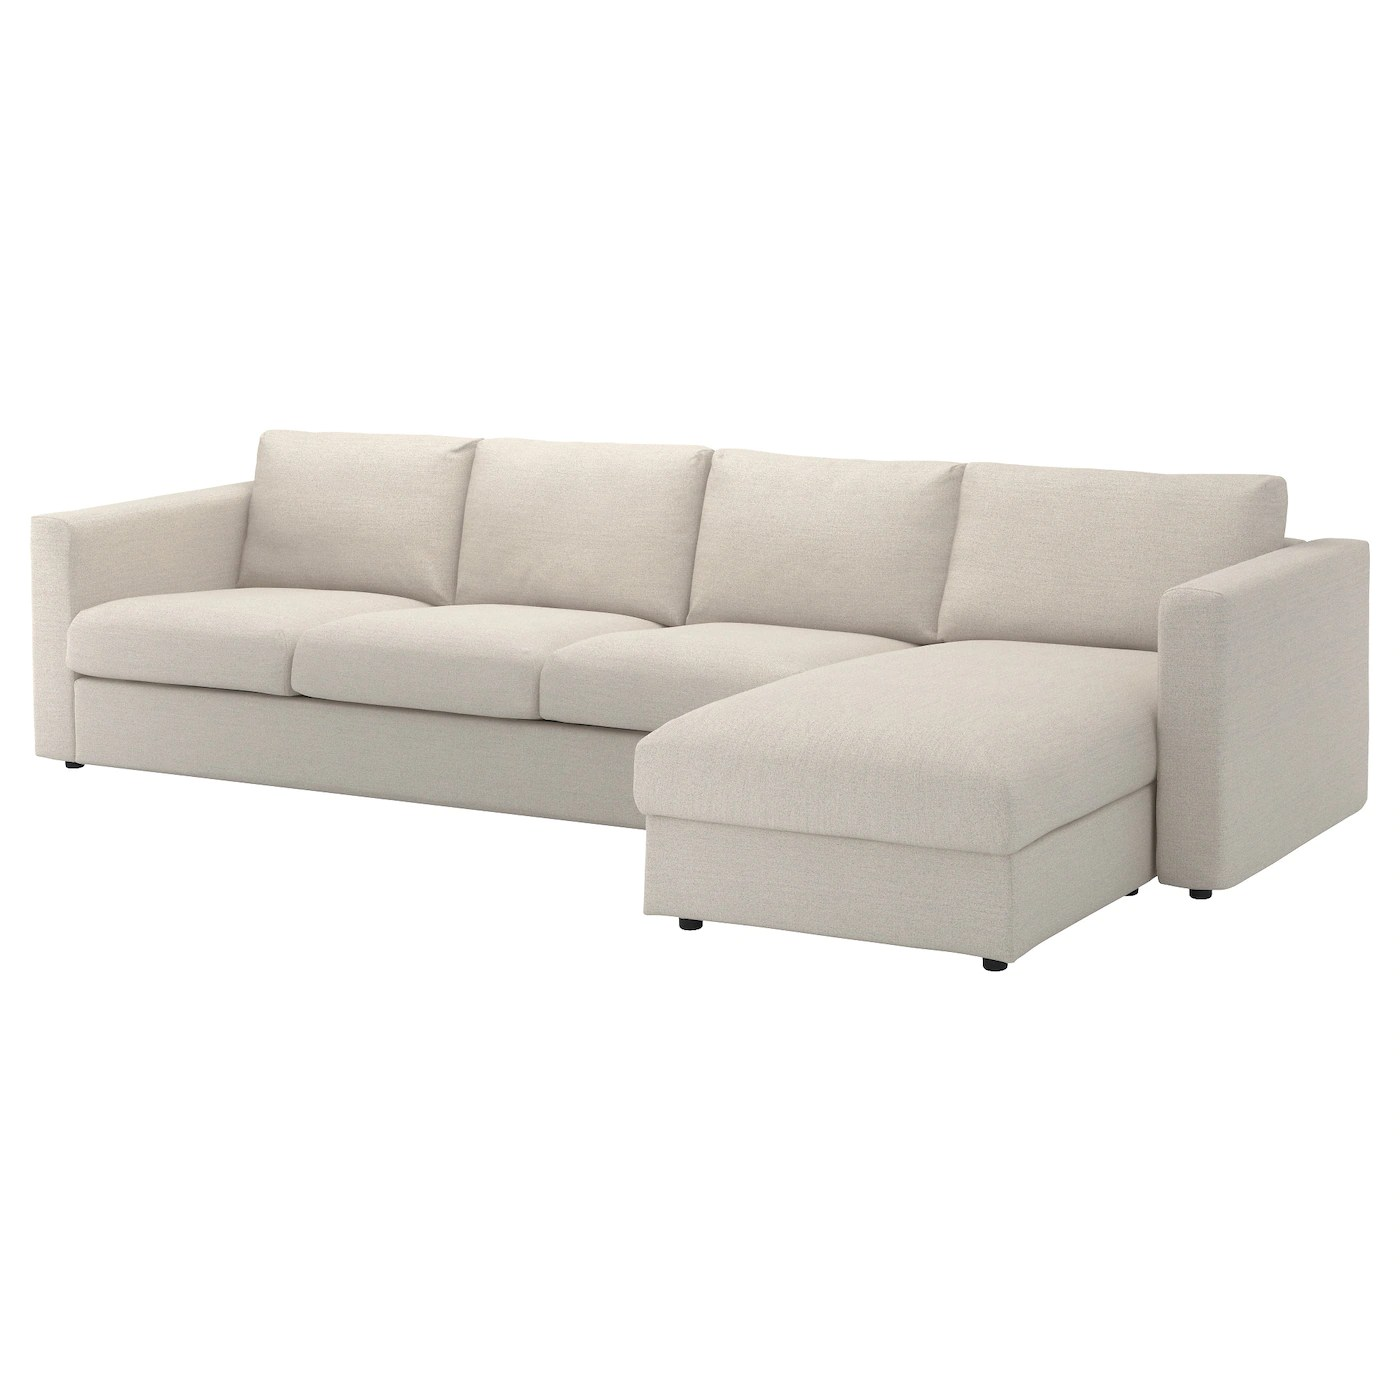 four seat sofa with chaise toddler set vimle 4 longue gunnared beige ikea